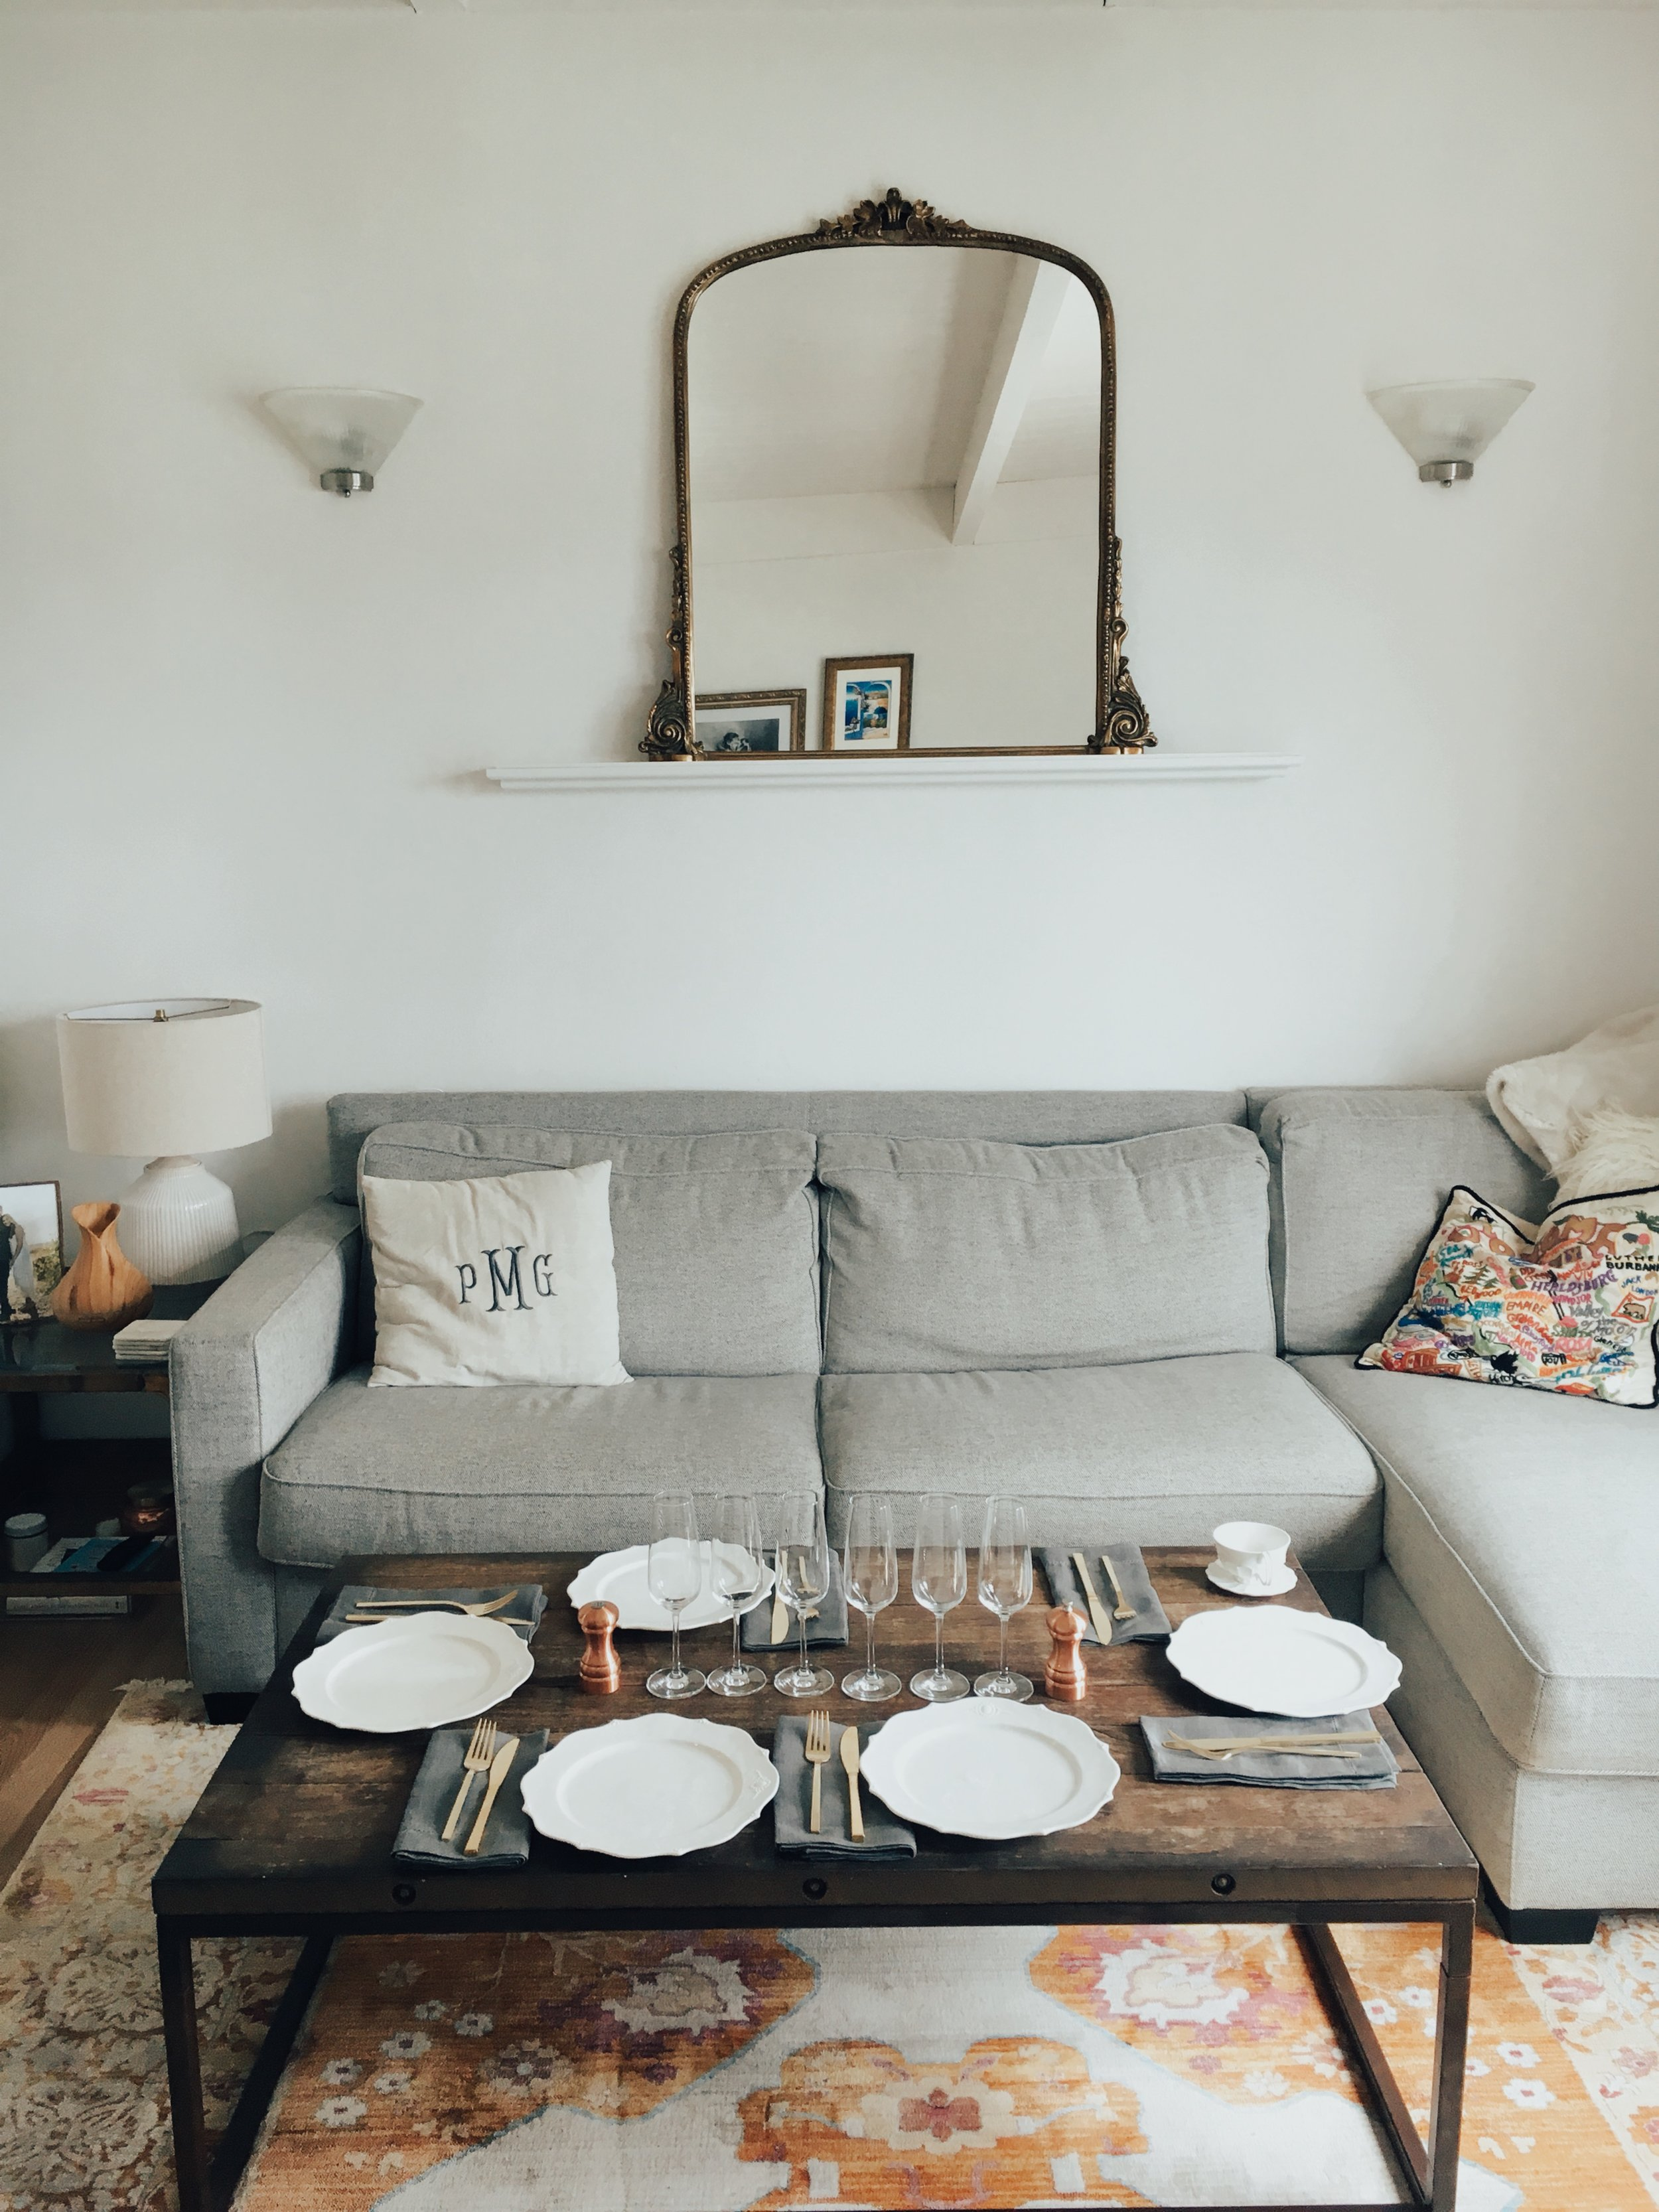 Pictured:  gold mirror ,  table lamp ,  patterned rug ,  champagne flutes ,  white plates ,  matching tea cups ,  gold flatware ,  copper salt & pepper mills ,  linen napkins ,  faux fur throw